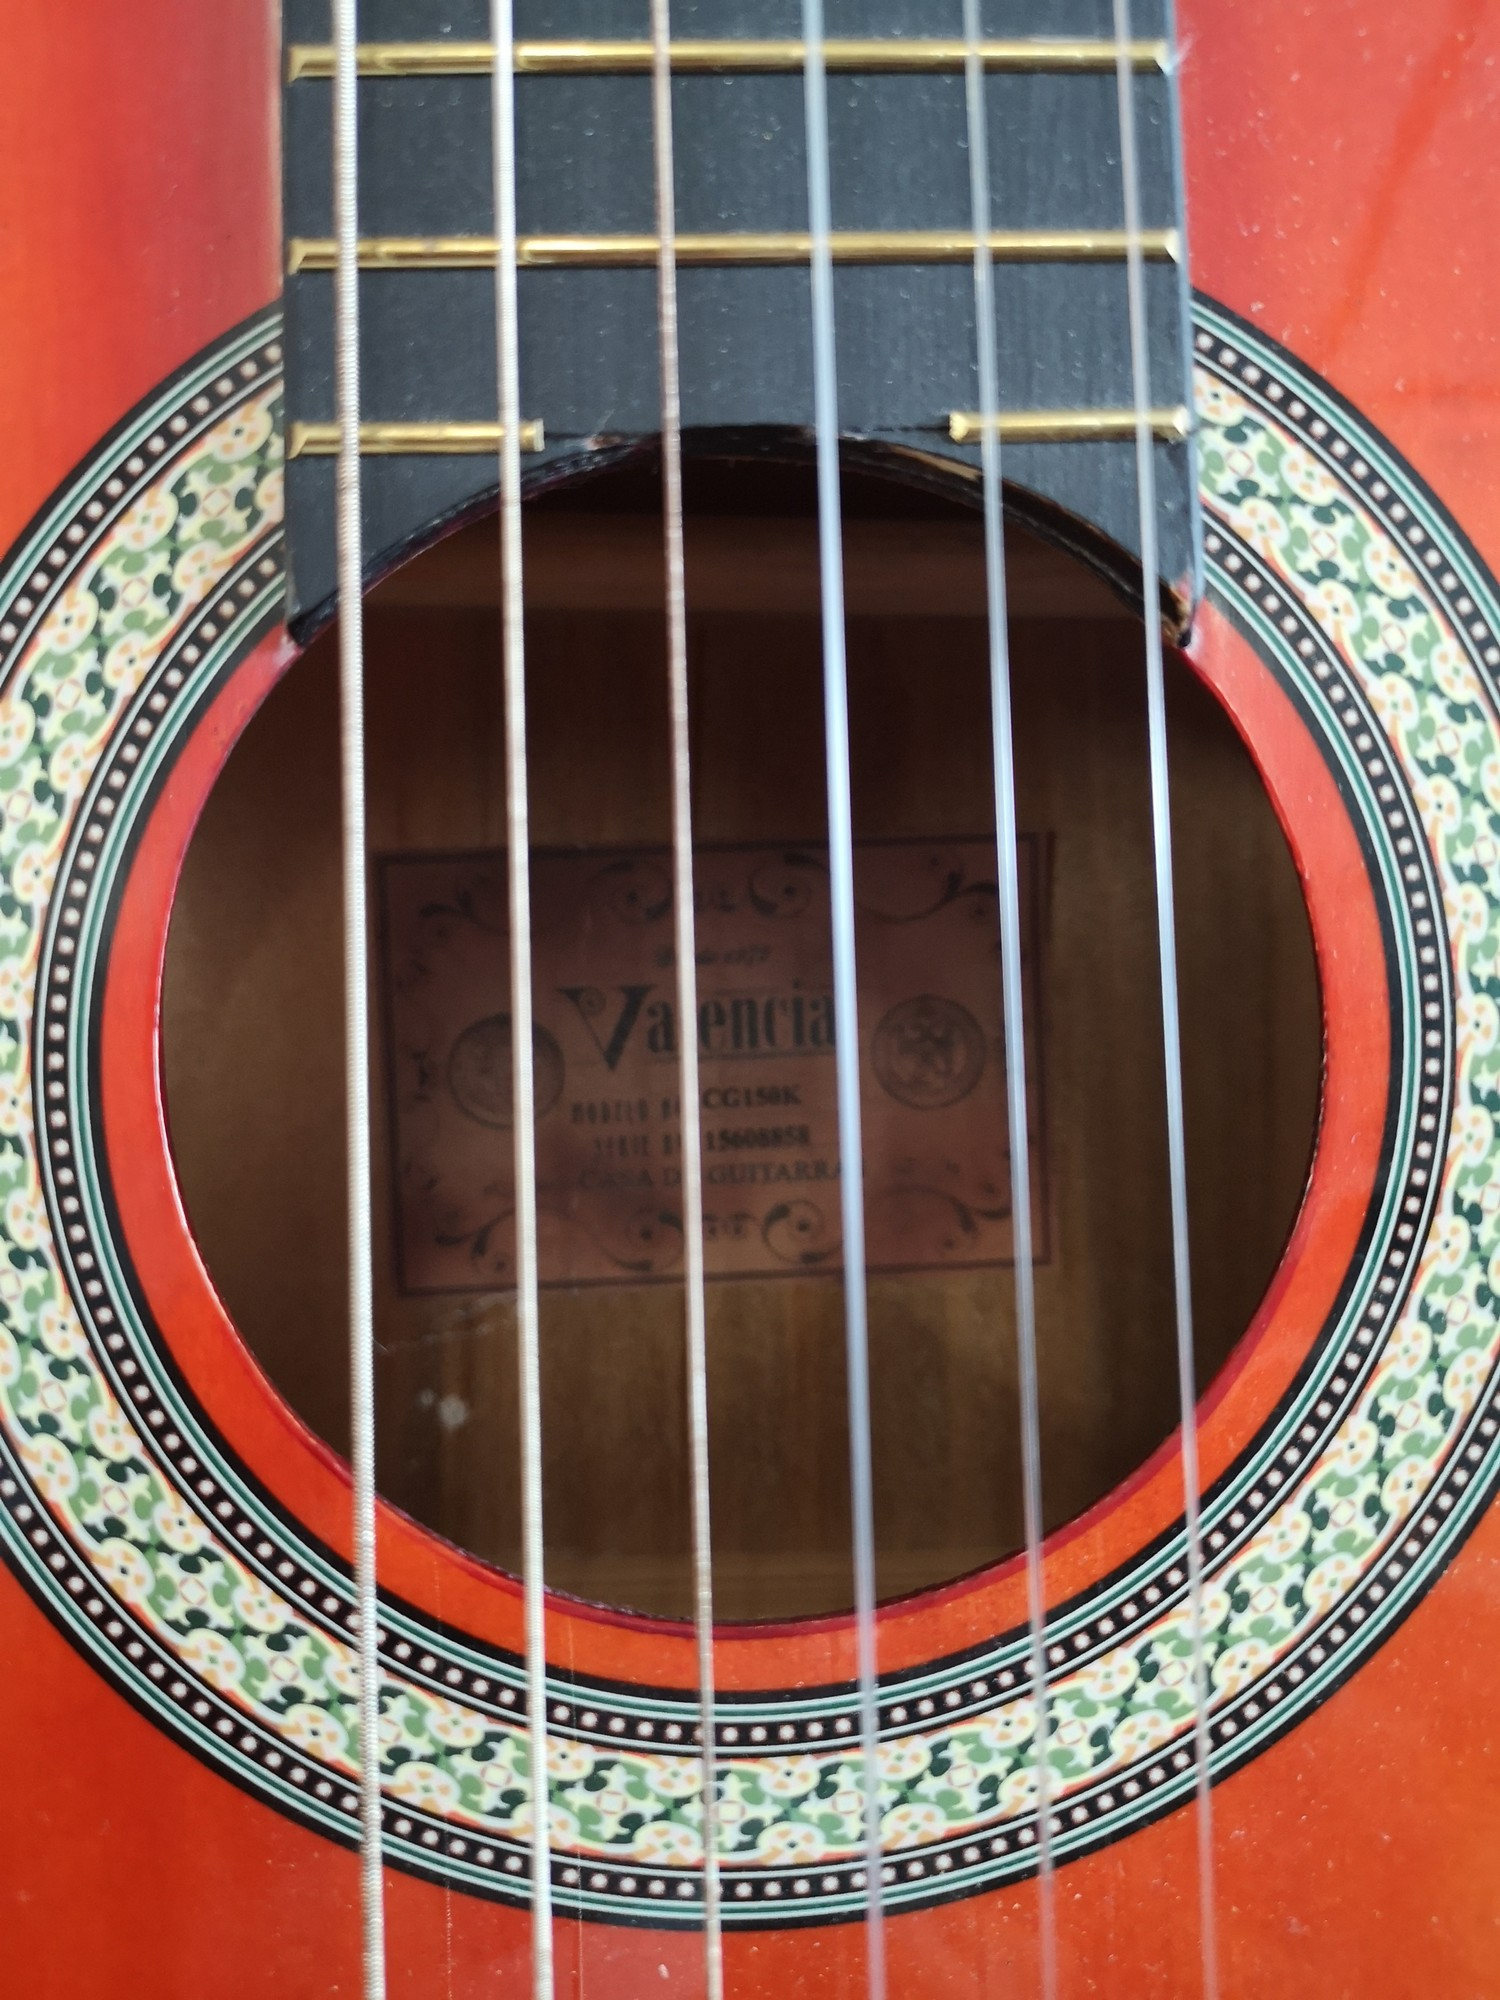 Valencia acoustic guitar. - Image 2 of 2